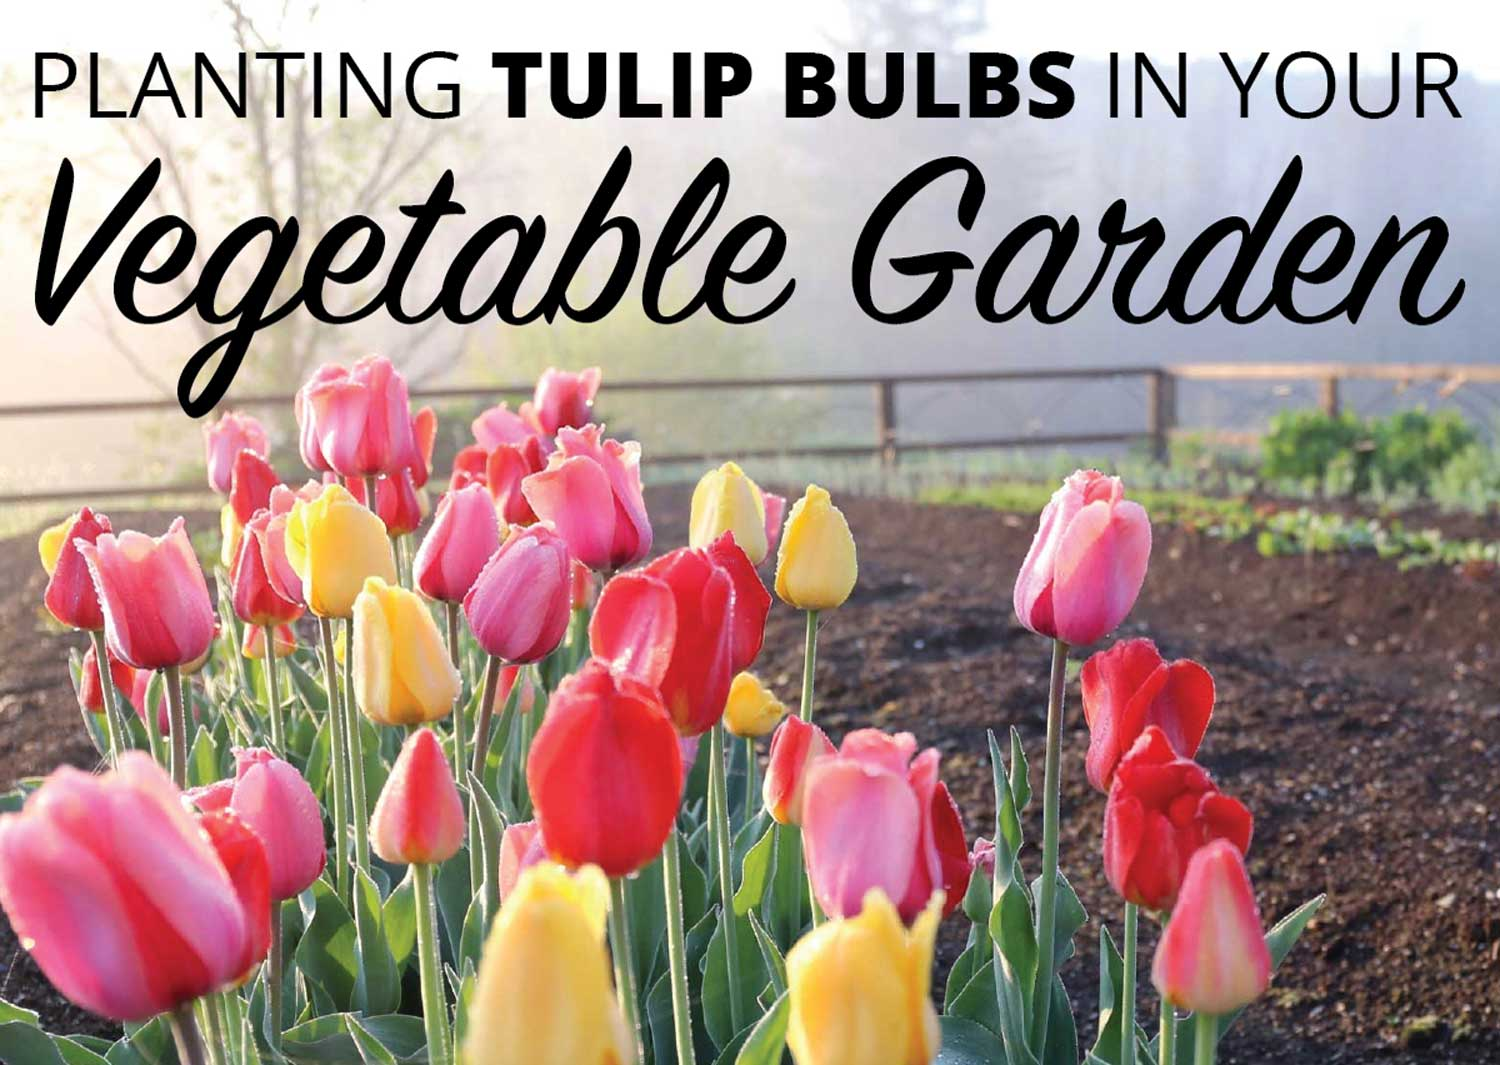 Planting-Tulip-bulbs-in-a-vegetable-garden-Longfield-Gardens-1.jpg